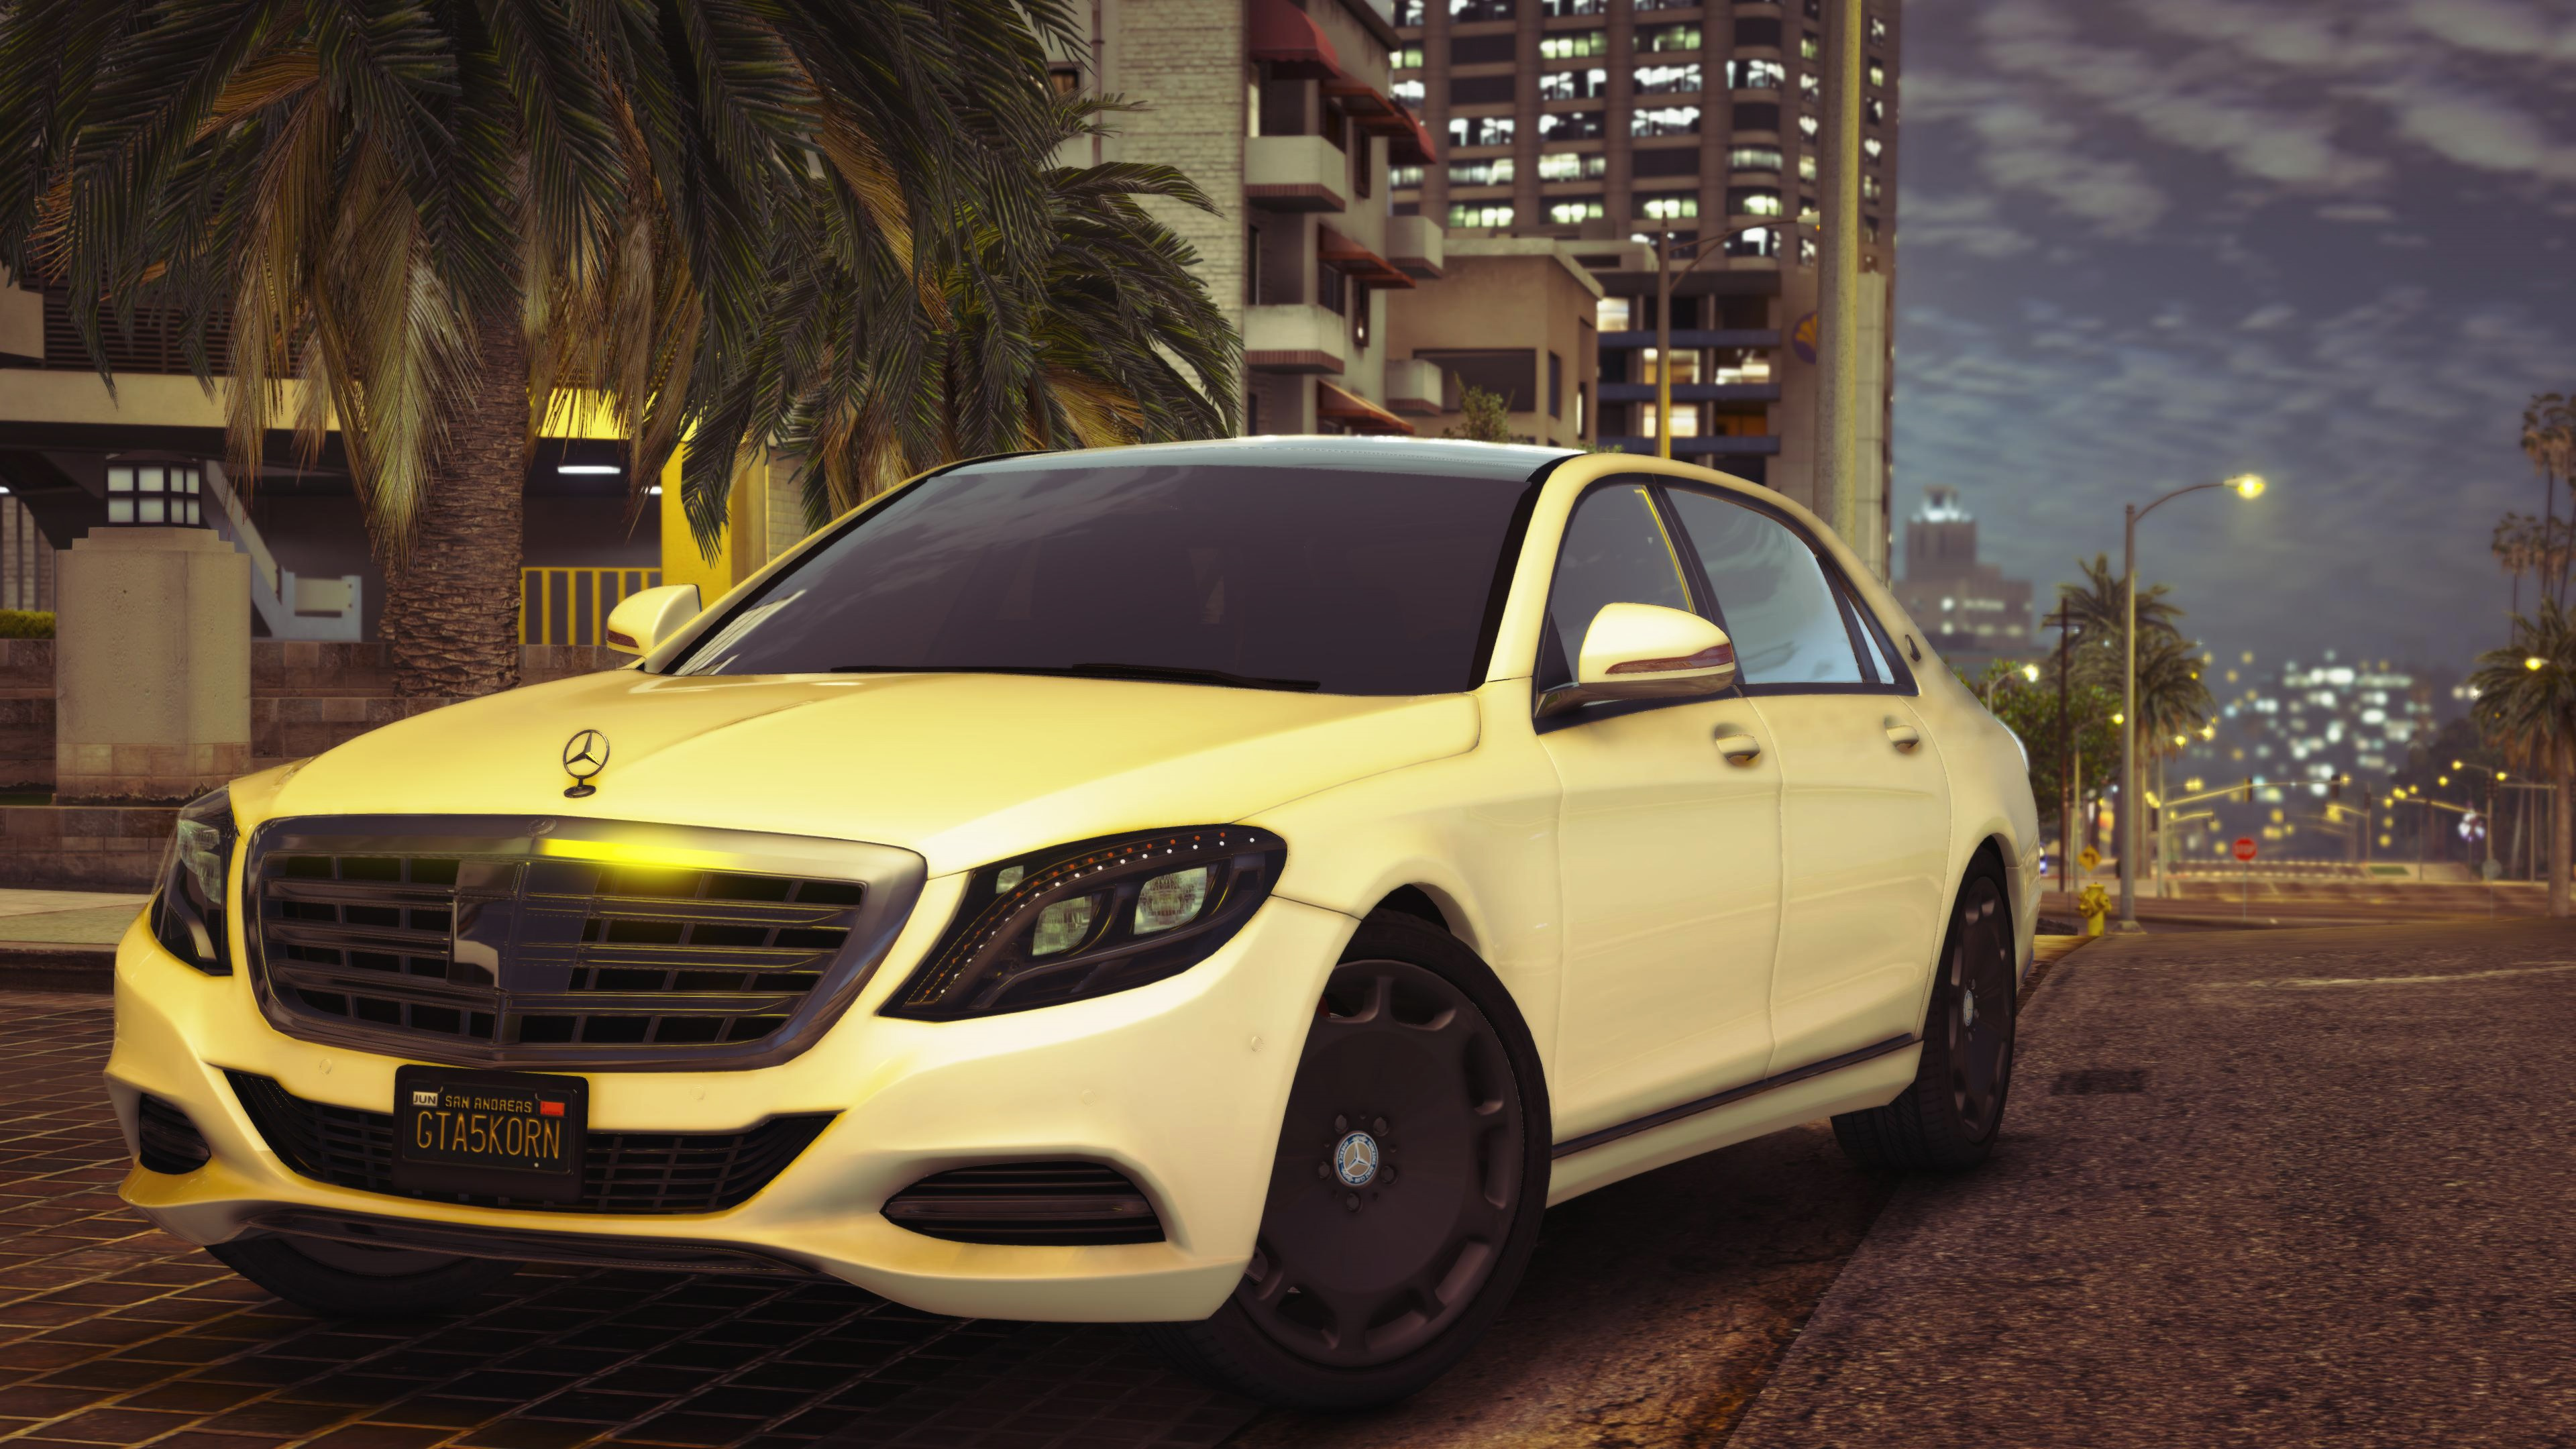 2015 mercedes-maybach s400 x222 - gta5-mods